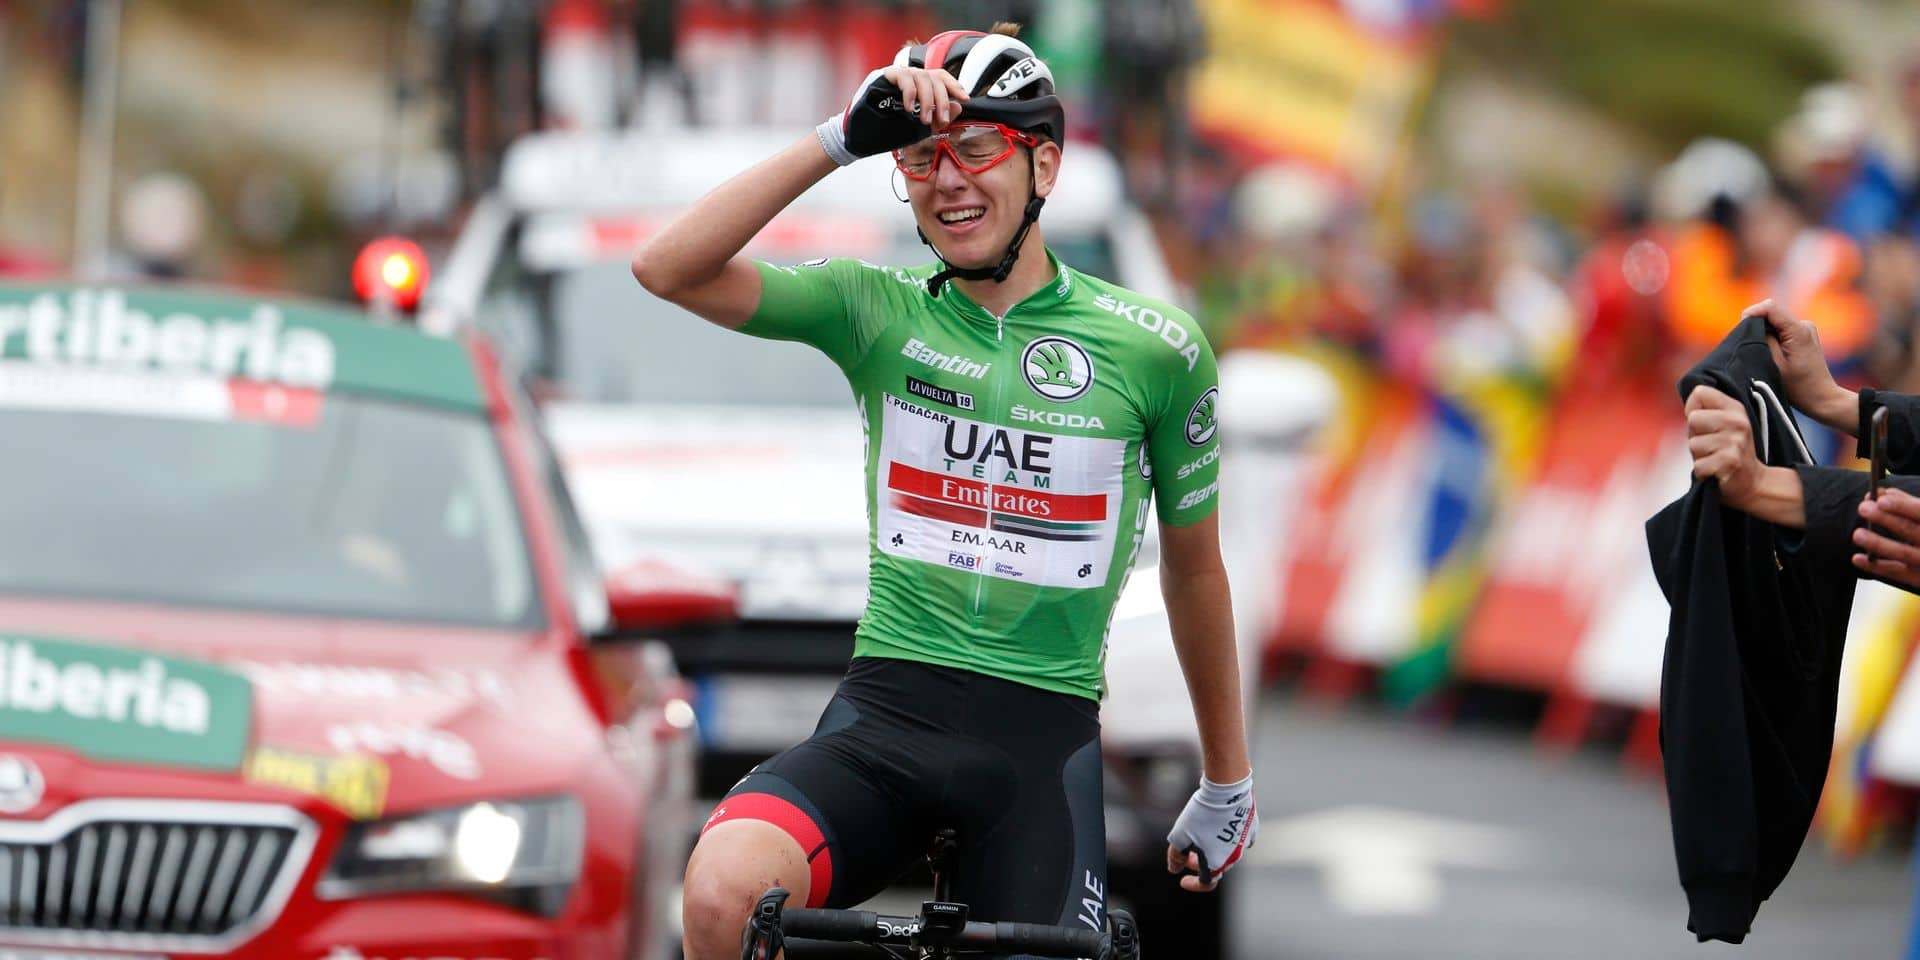 Slovenian Tadej Pogacar of UAE Team Emirates celebrates after winning stage 20 of the 2019 edition of the 'Vuelta a Espana', Tour of Spain cycling race, from Arenas de San Pedro to Plataforma de Gredos (190,4 km), Saturday 14 September 2019. BELGA PHOTO YUZURU SUNADA - FRANCE OUT